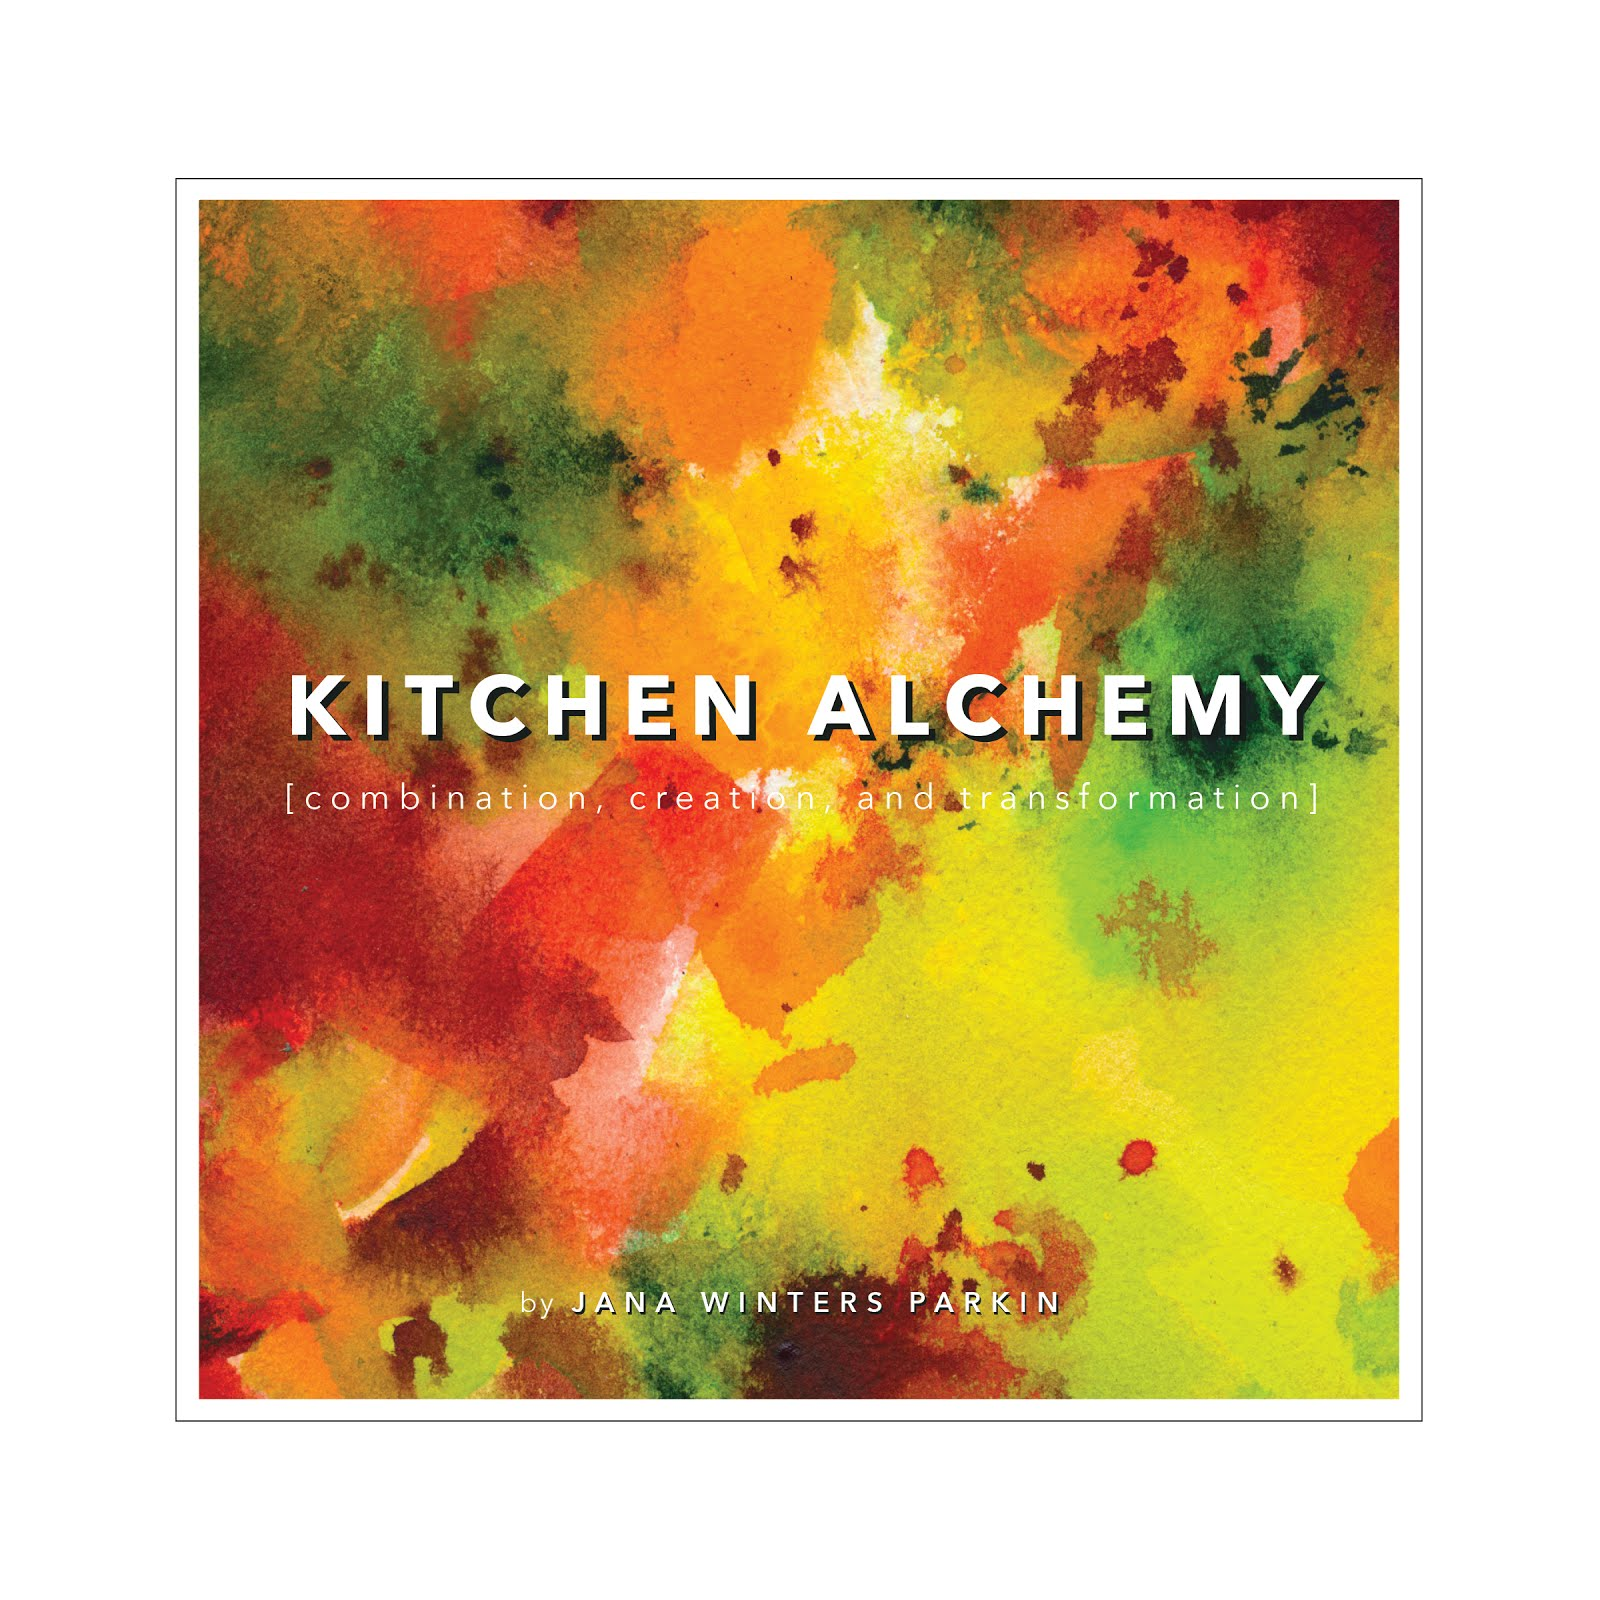 Kitchen Alchemy